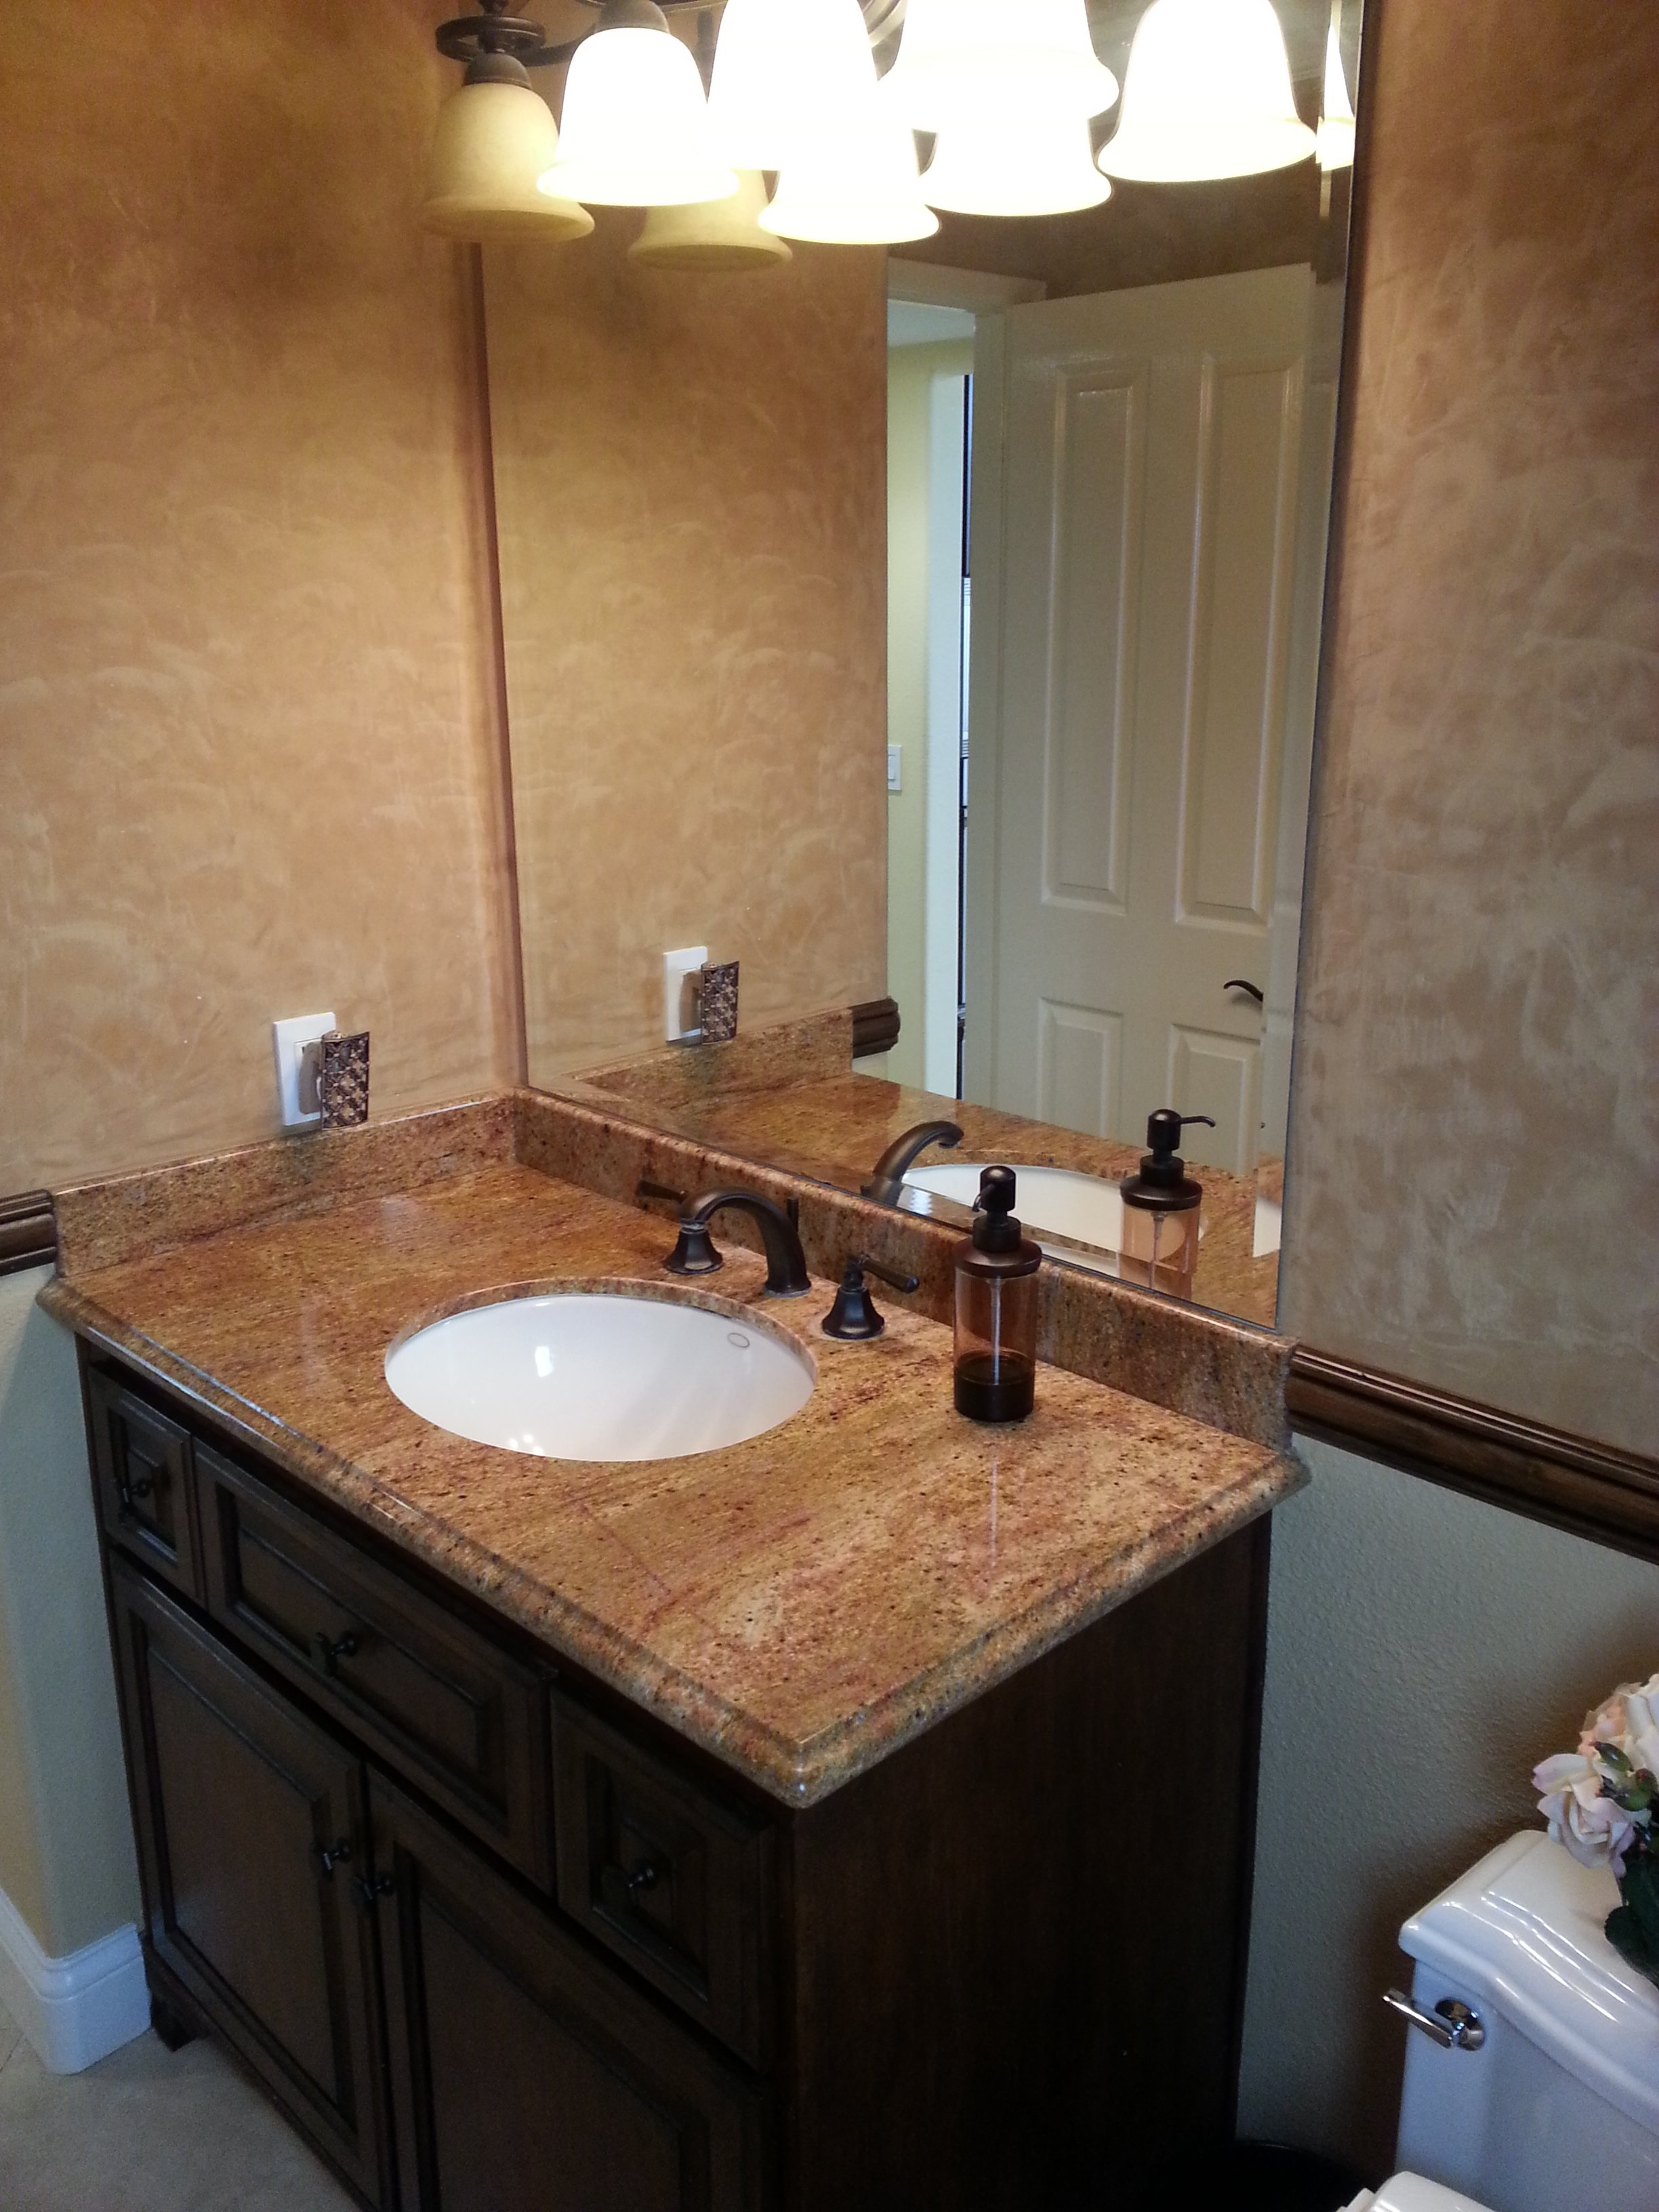 View of bathroom sink and mirror